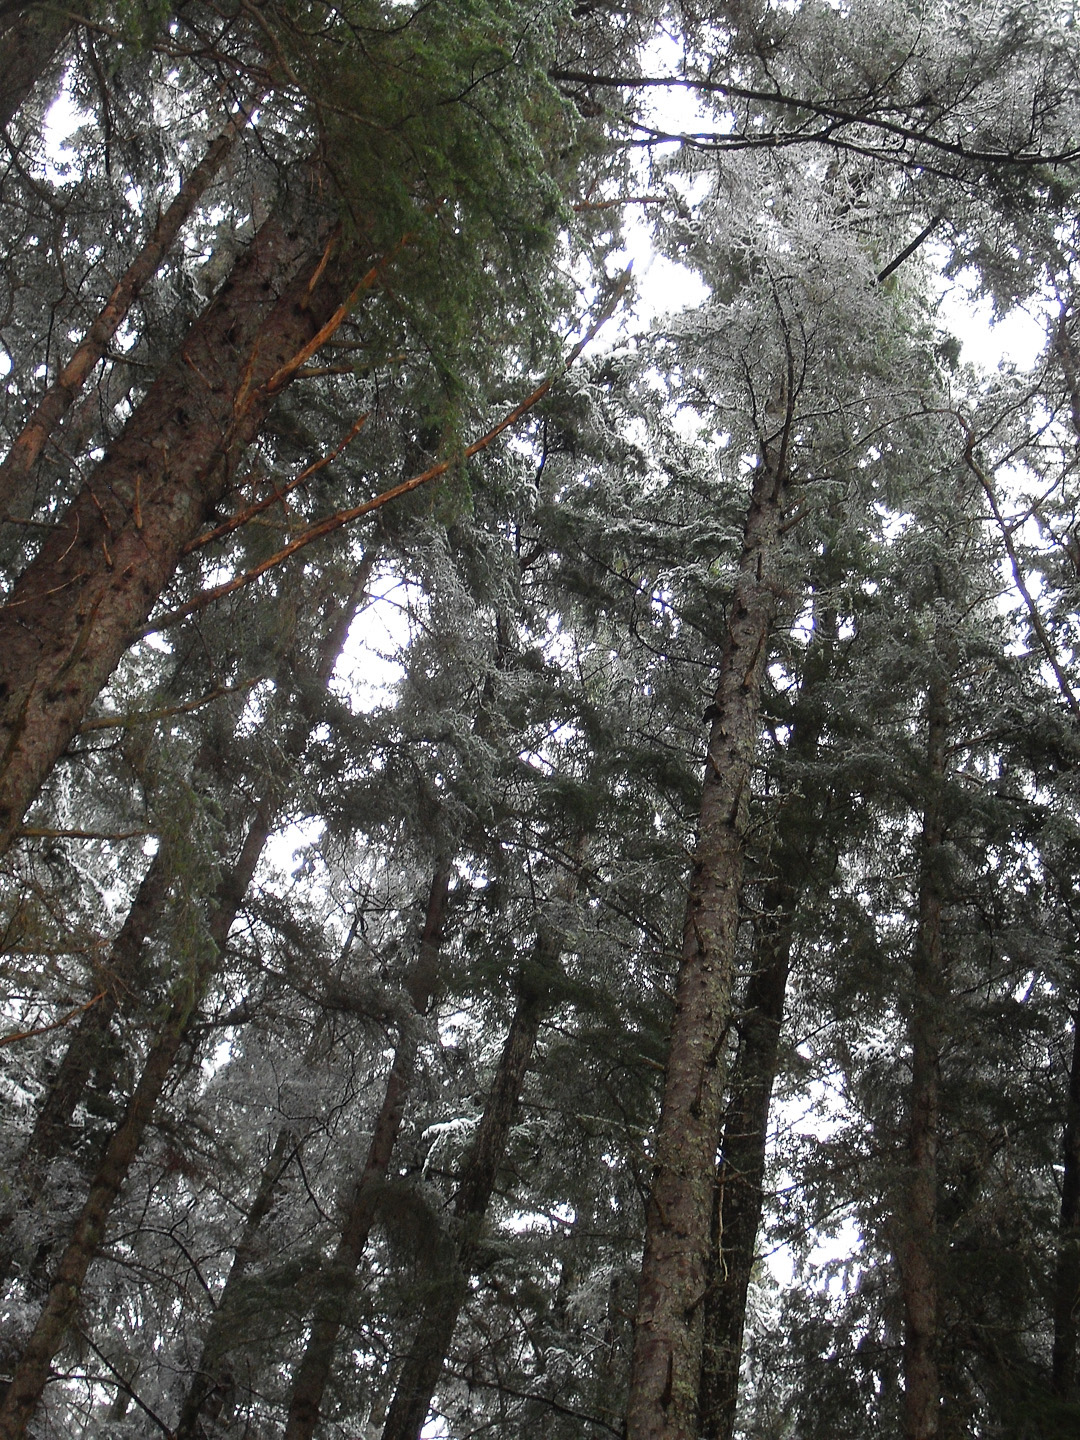 Looking up into the snowy canopy of old, tall western hemlock and Sitka spruce.